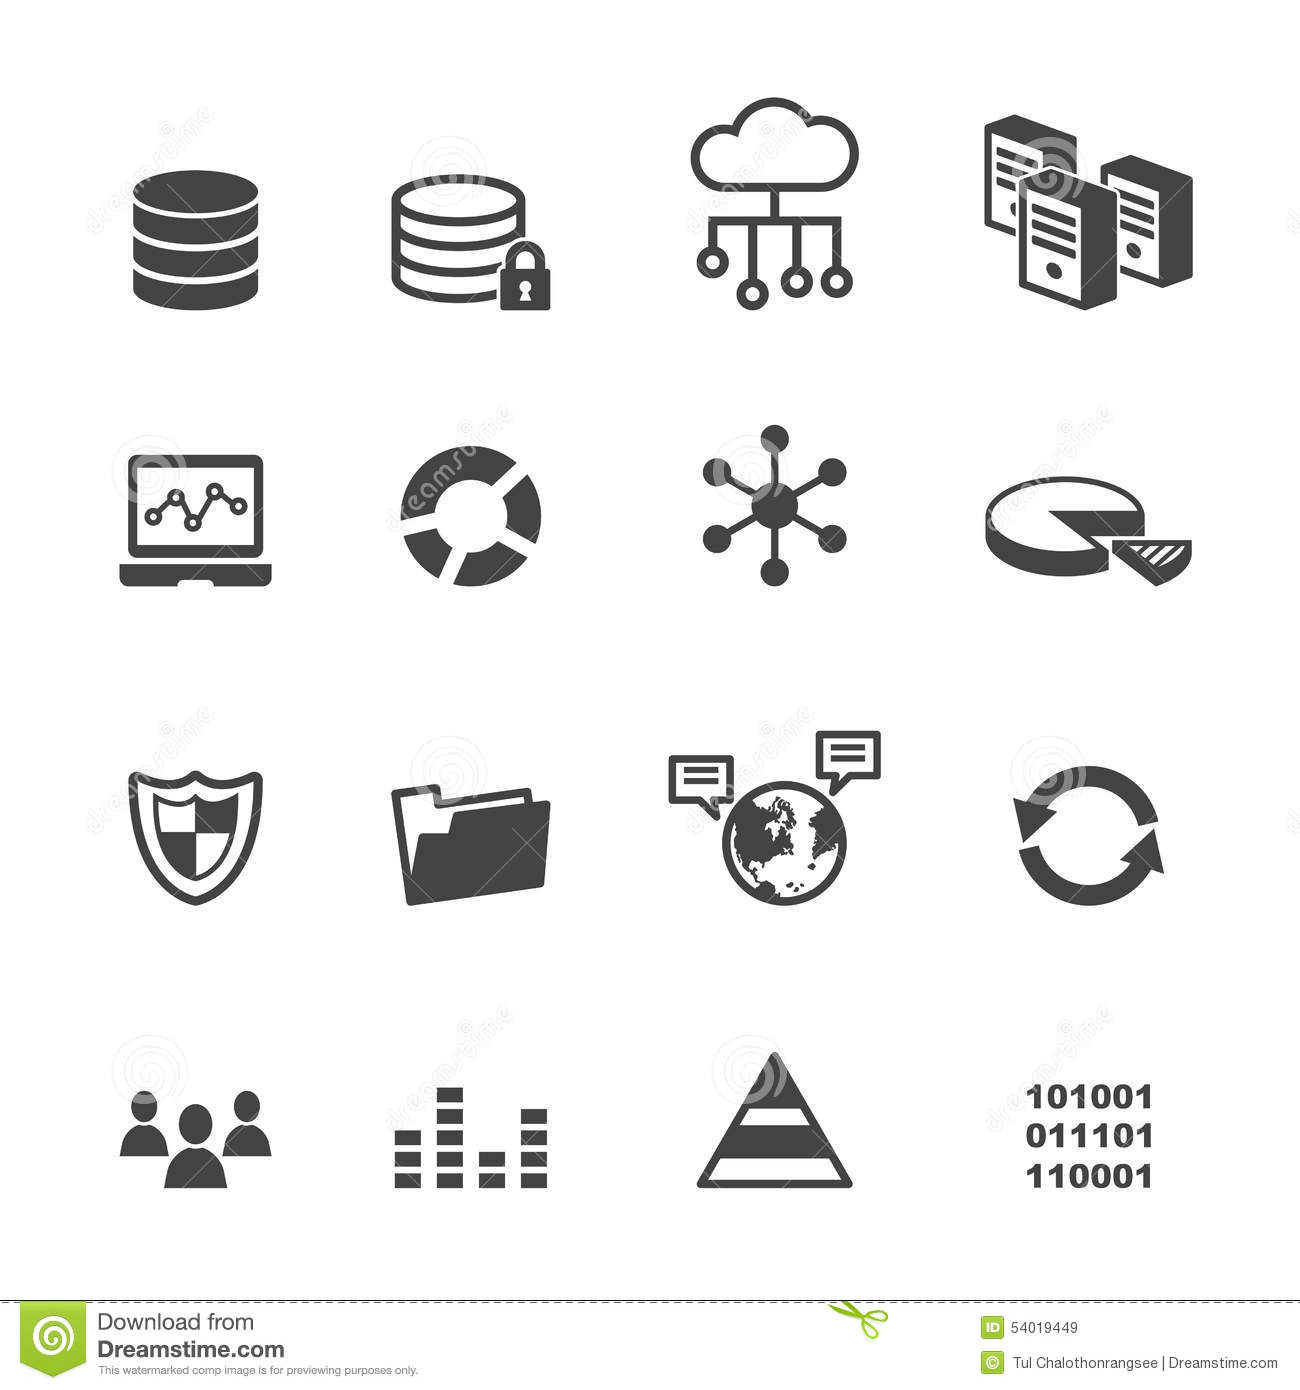 Data Icons Stock Vector Illustration Of Illustration